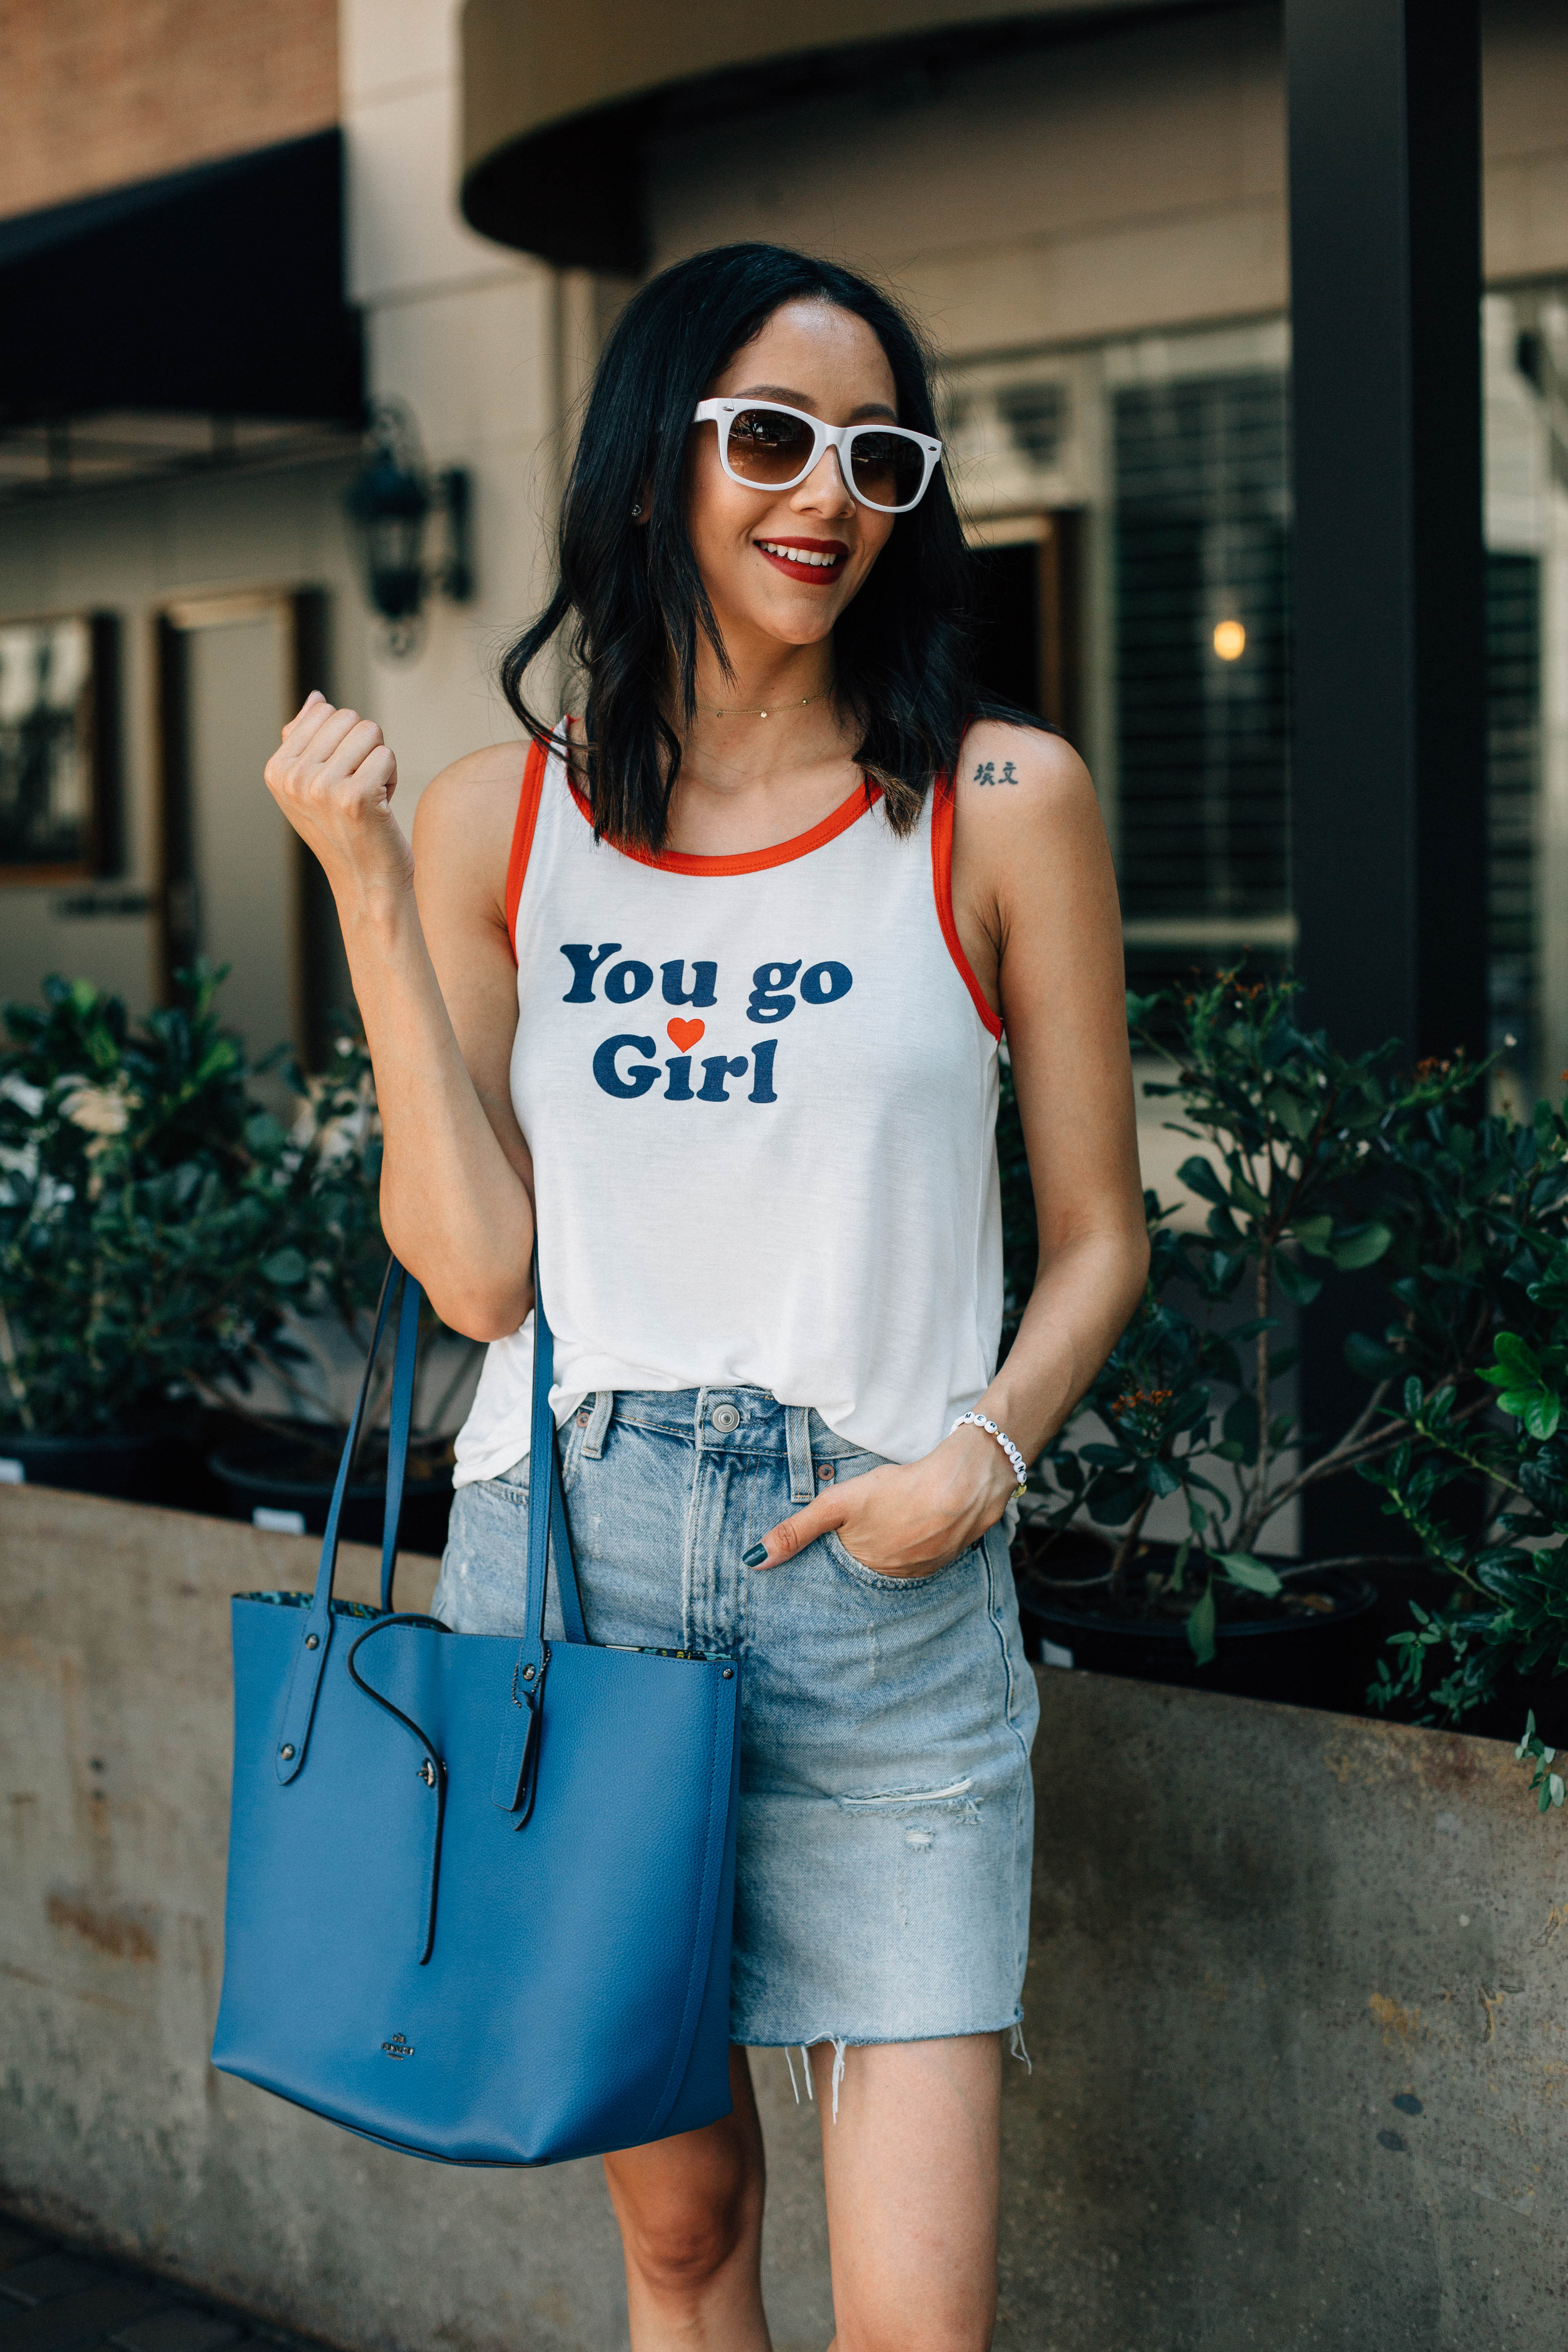 Lifestyle blogger Lilly Beltran from Daily Craving wearing a blue Coach tote